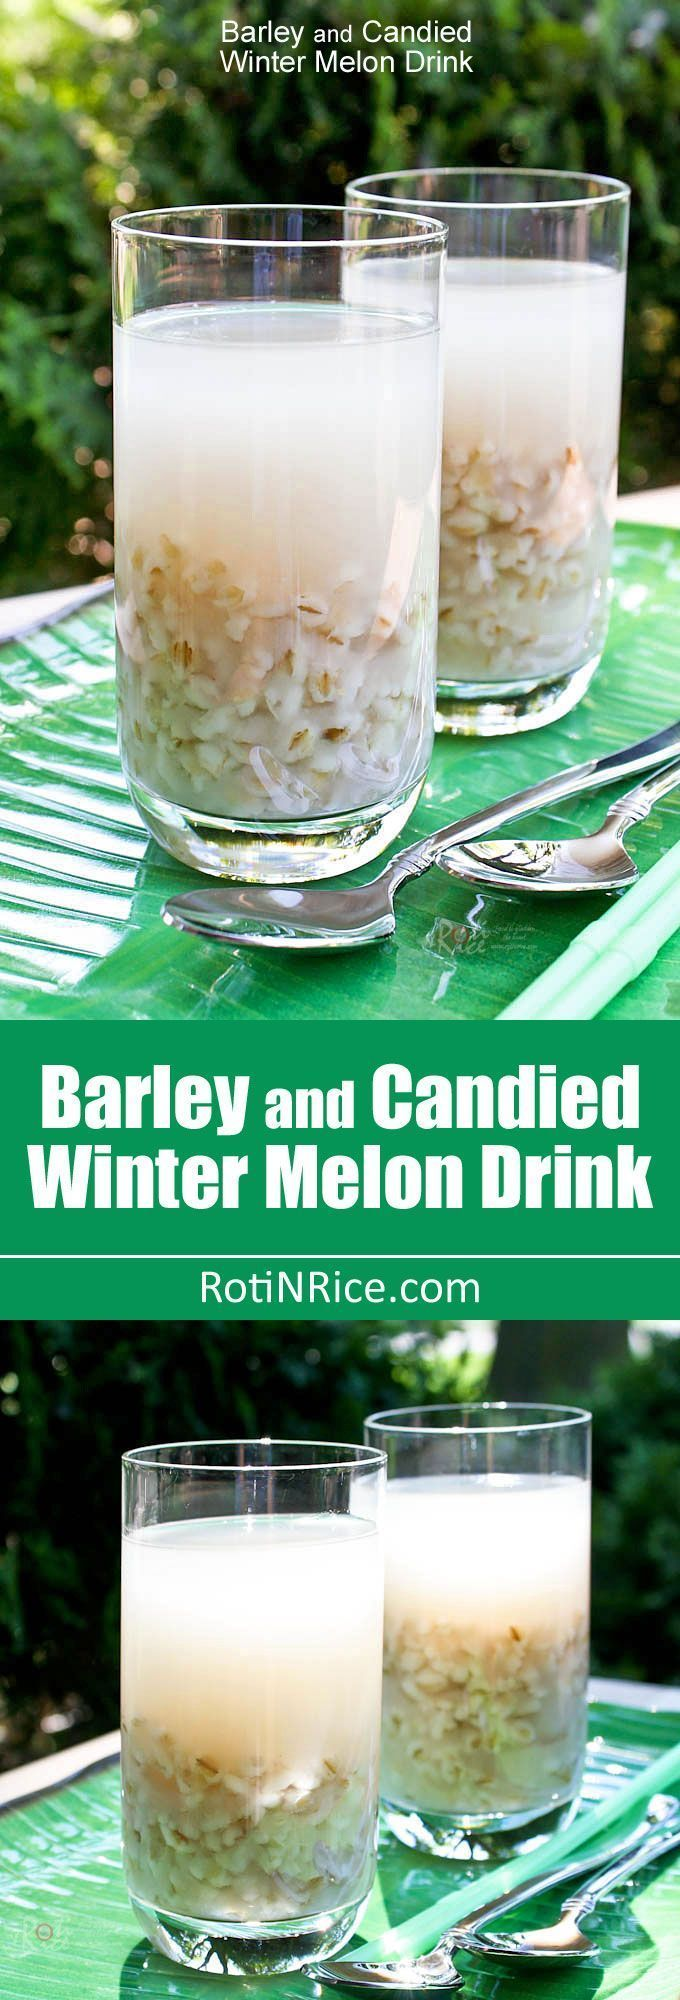 Barley and Candied Winter Melon Drink #wintermelon This sweet Barley and Candied Winter Melon Drink is the perfect antidote to hot summer days. Both barley and winter melon are said to have cooling properties. | RotiNRice.com #wintermelon Barley and Candied Winter Melon Drink #wintermelon This sweet Barley and Candied Winter Melon Drink is the perfect antidote to hot summer days. Both barley and winter melon are said to have cooling properties. | RotiNRice.com #wintermelon Barley and Candied Win #wintermelon